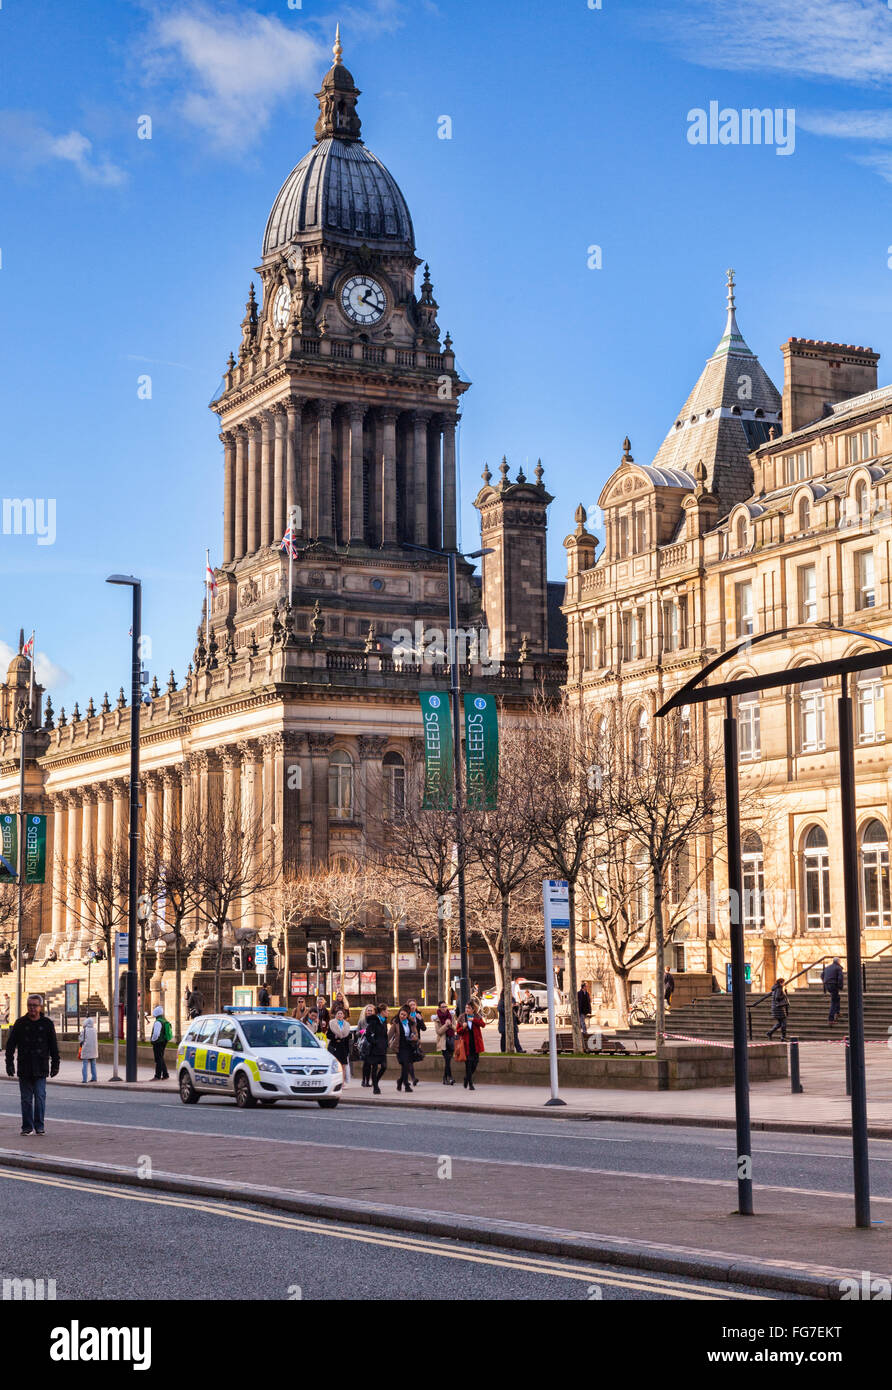 Leeds Town Hall, The Headrow, Leeds, West Yorkshire, England, UK - Stock Image